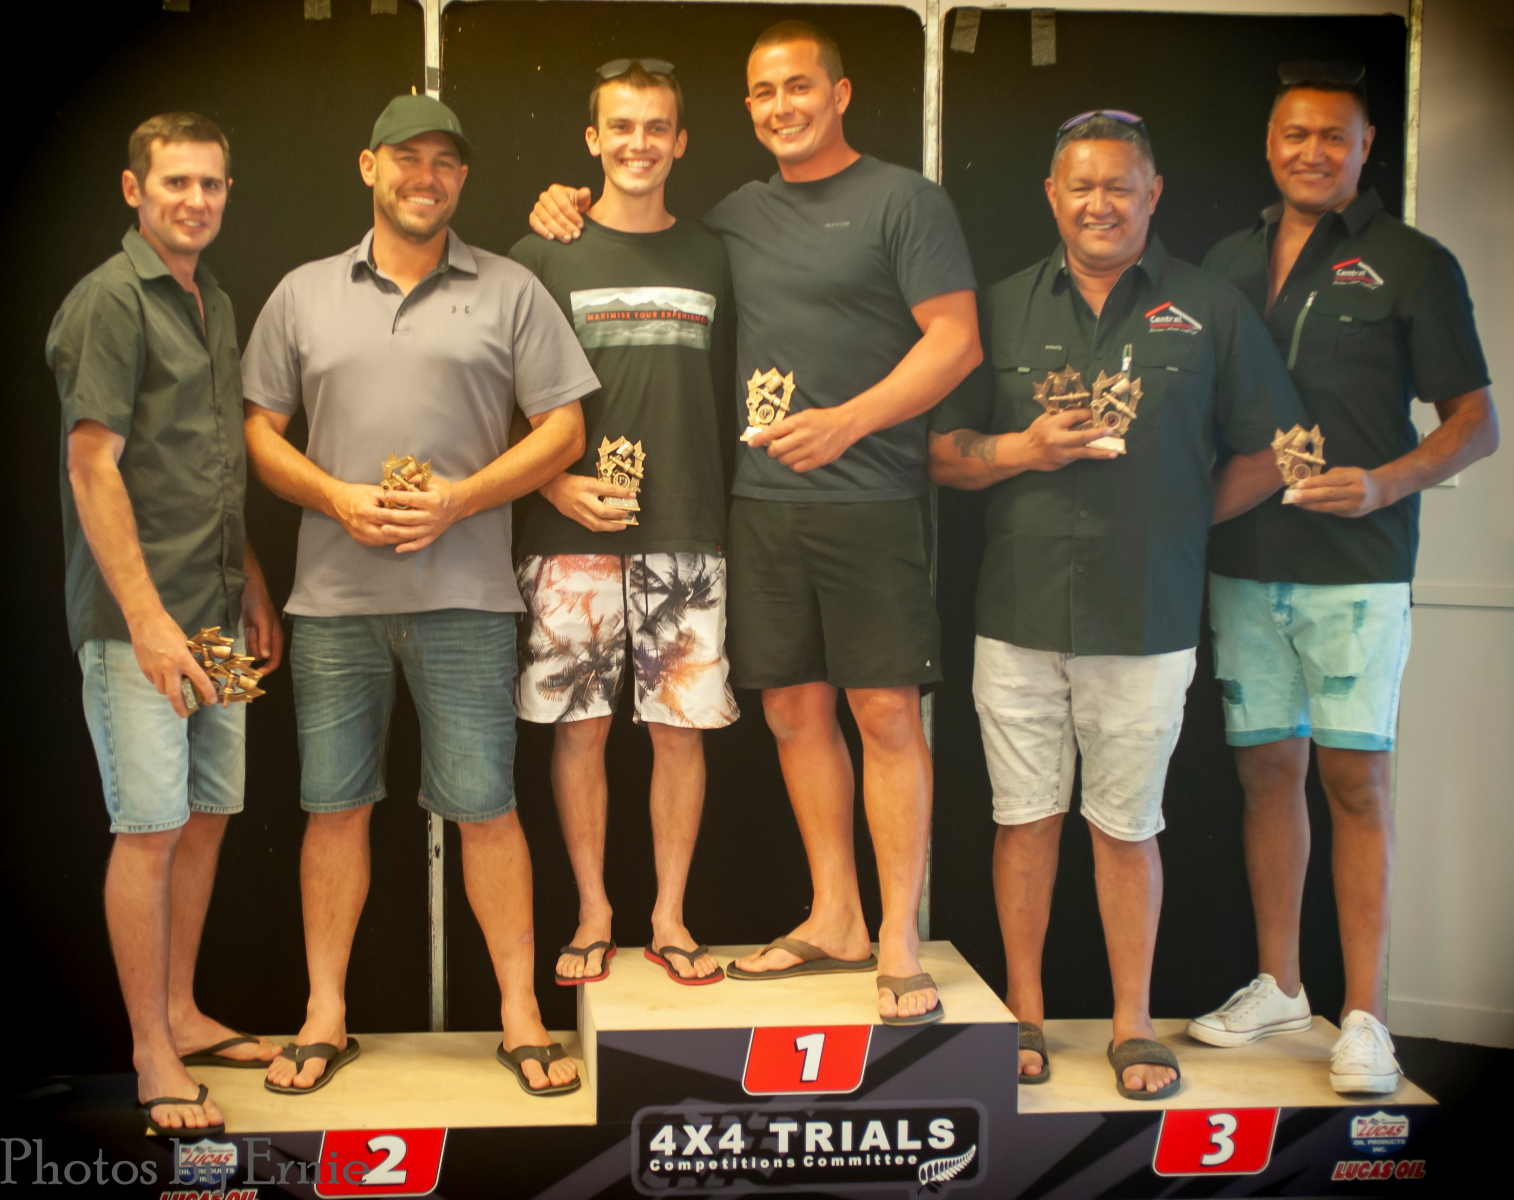 D Class - 2nd Chris Tomalin & Russell Luders, 1st Fleche Crawford & Jarred Biggs, 3rd Shane & Reuben Mason